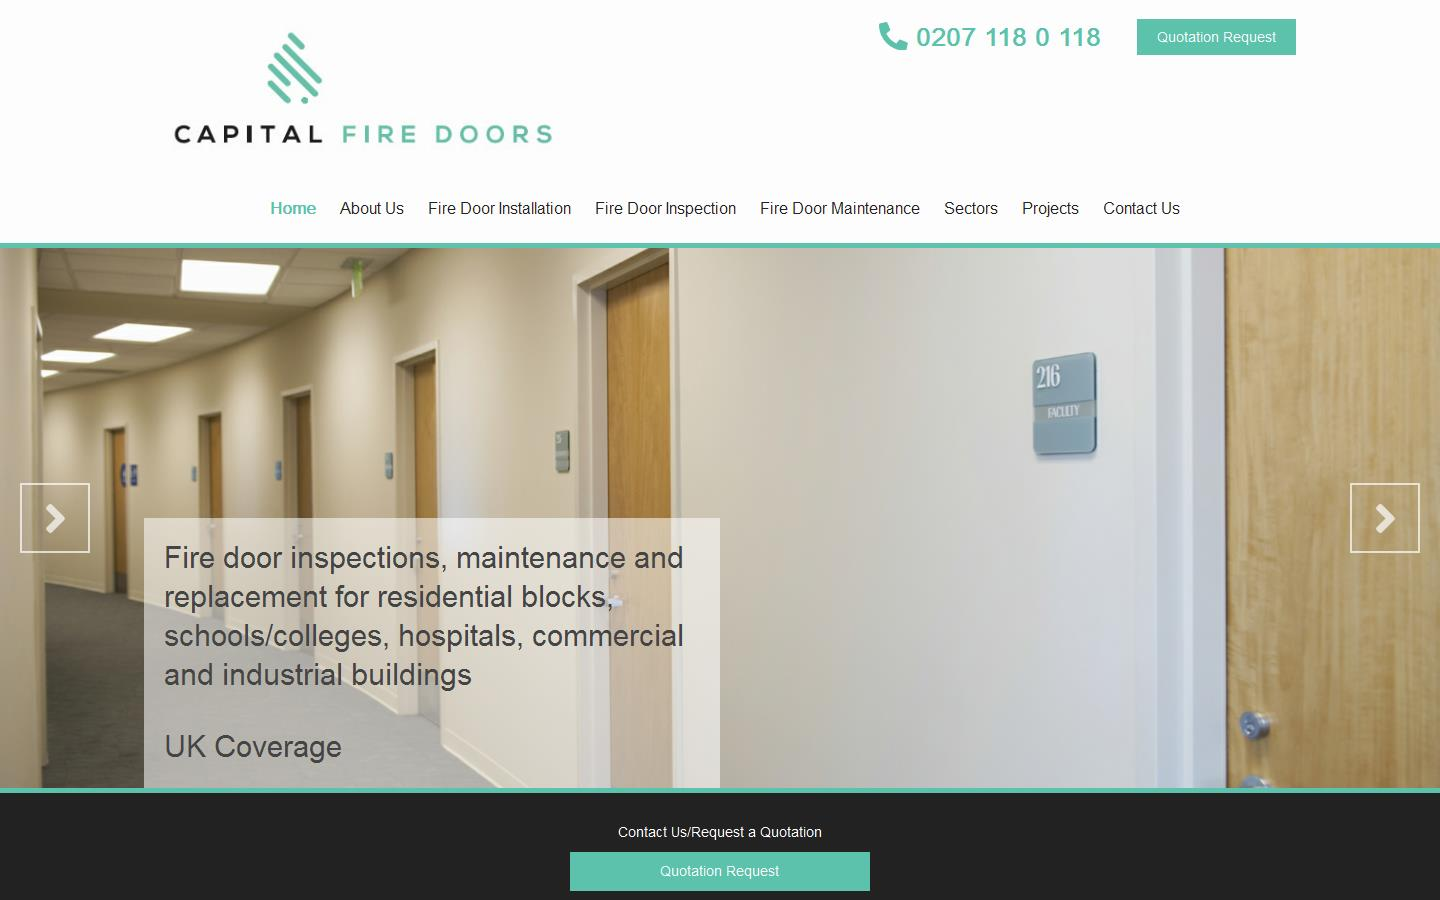 Capital Fire Doors, Whyteleafe, Surrey, CR3 0BL on